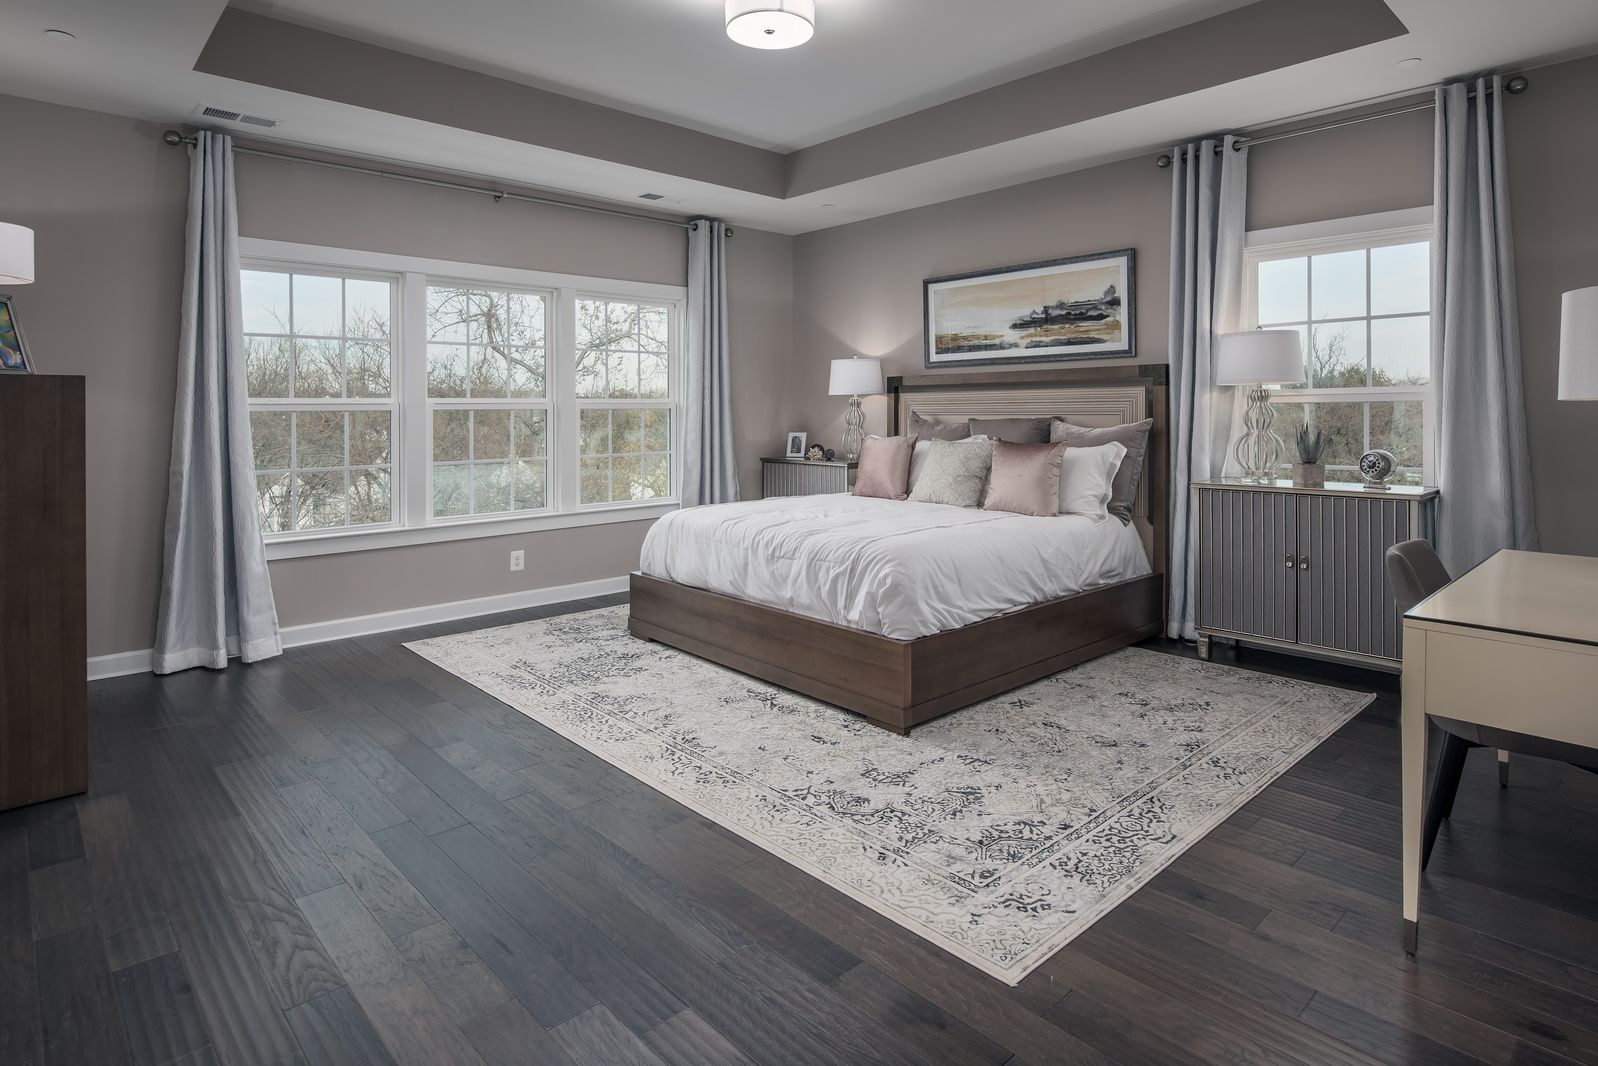 Bedroom featured in the Andrew Carnegie By NVHomes in Baltimore, MD